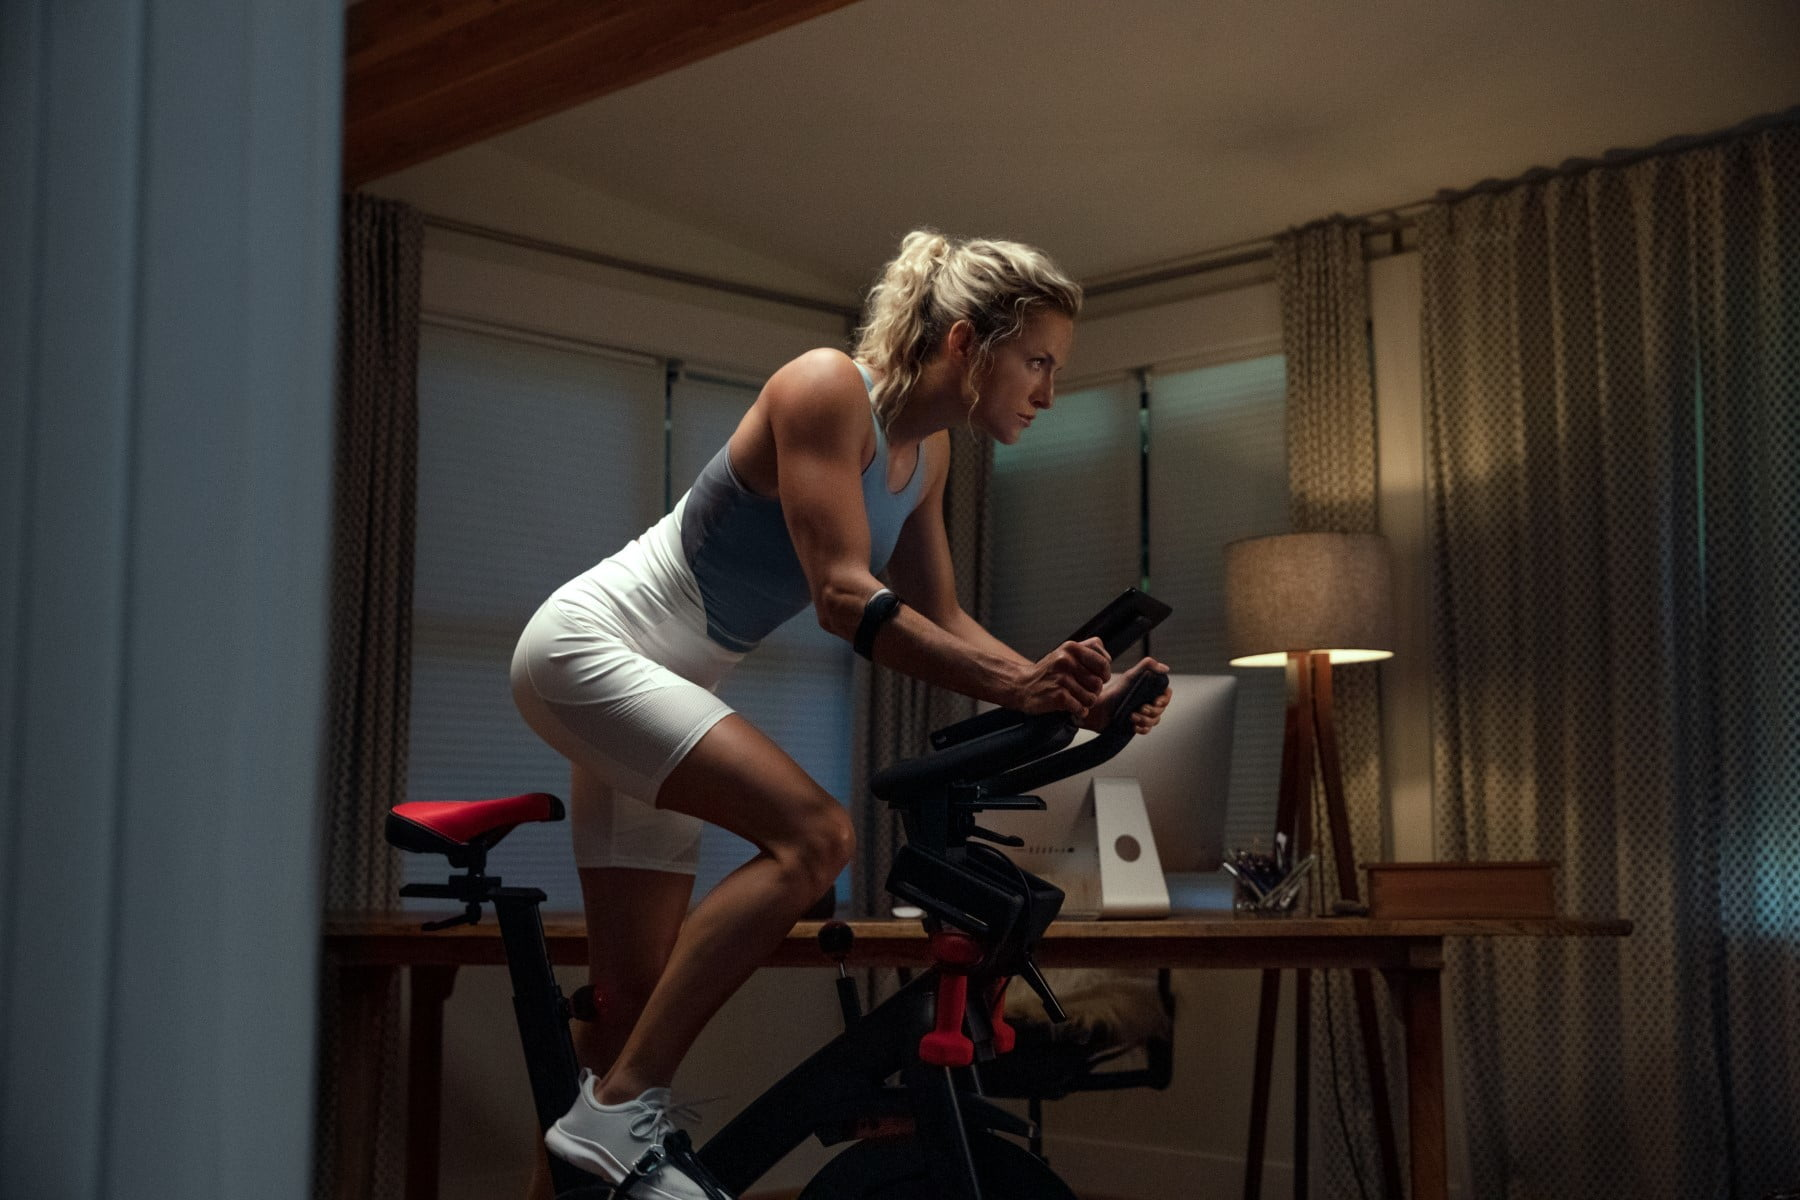 Bowflex's new C6 offers a Peleton-like biking experience for half the price